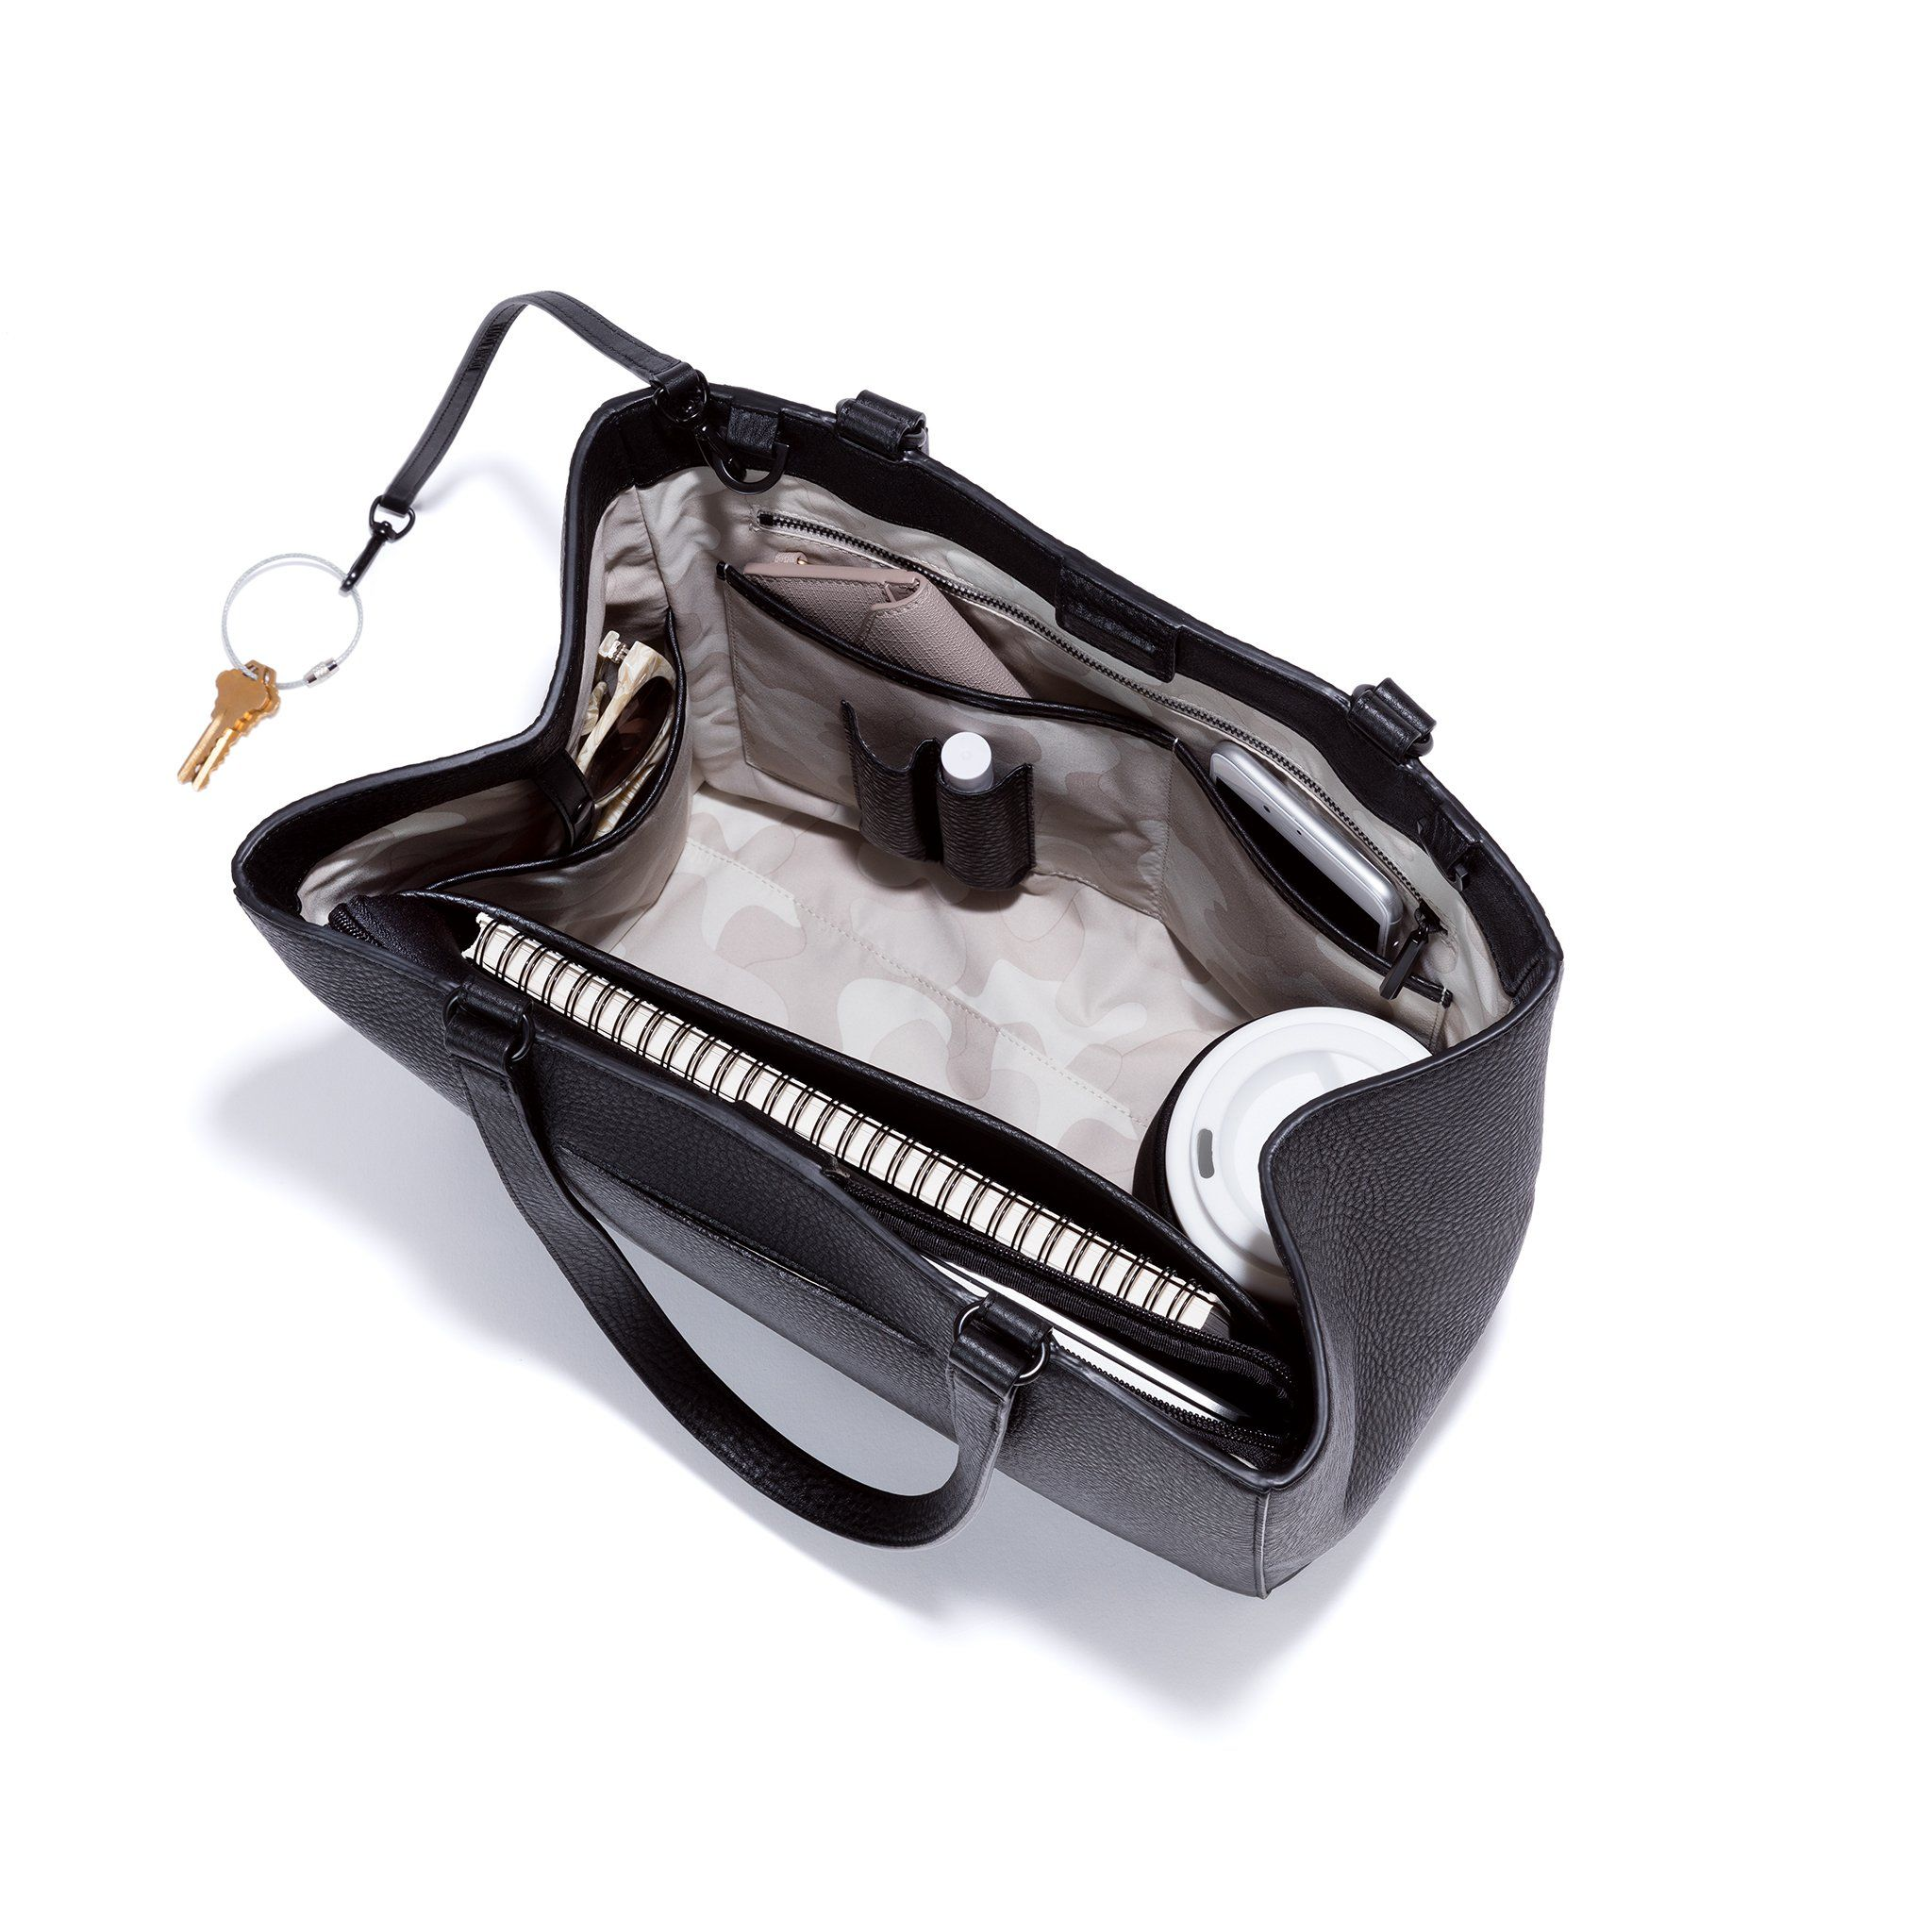 26ac4d700a3 This is the work bag professional women everywhere have been looking ...